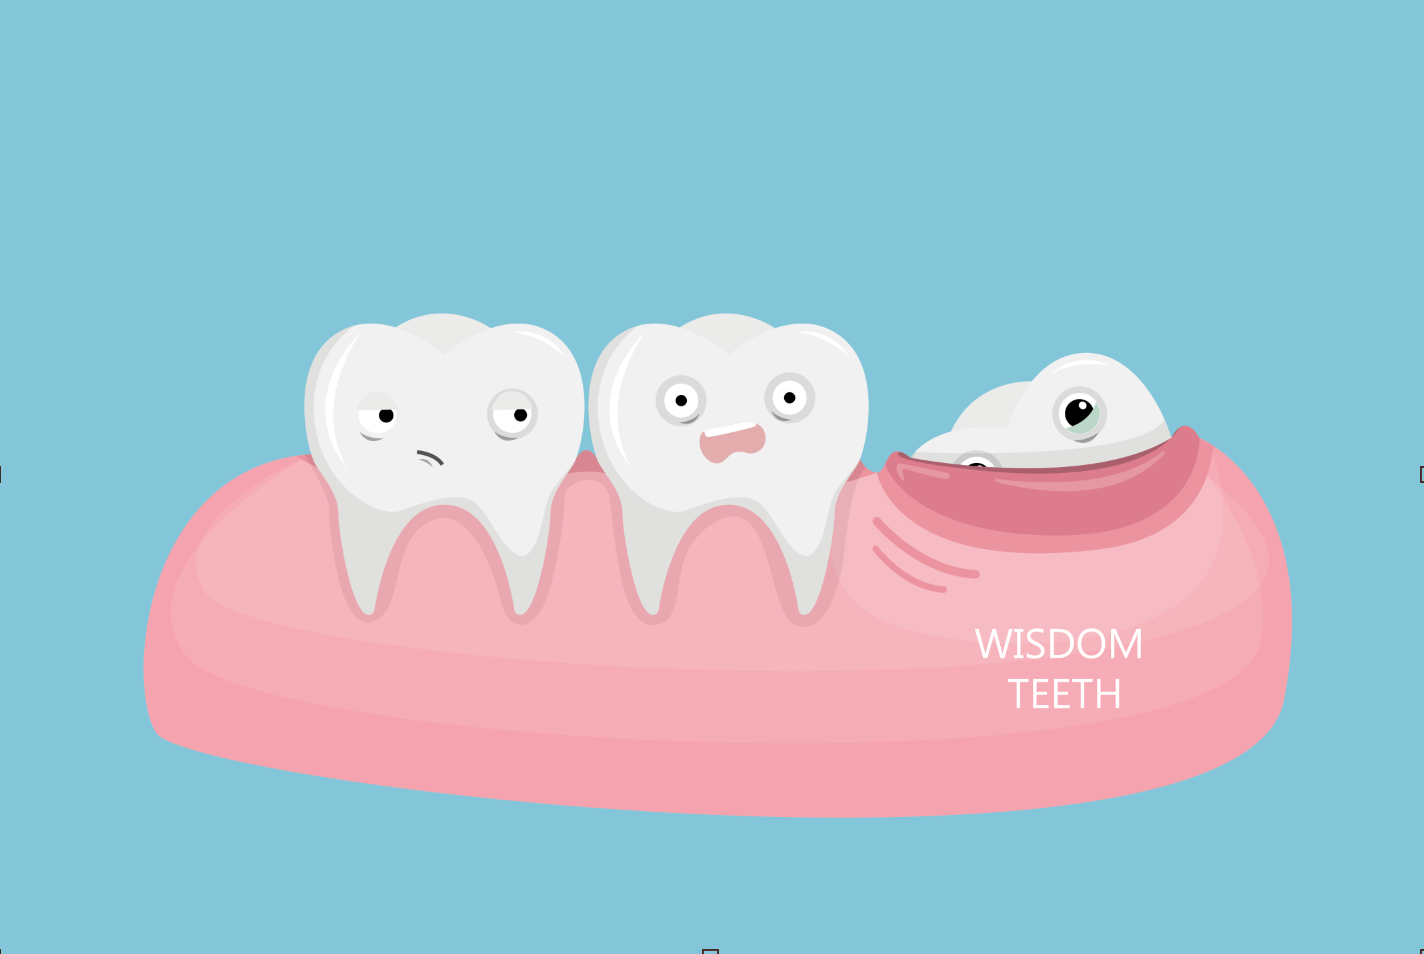 WHY ARE WISDOM TEETH REMOVED? WHAT IS THE PROCEDURE LIKE?